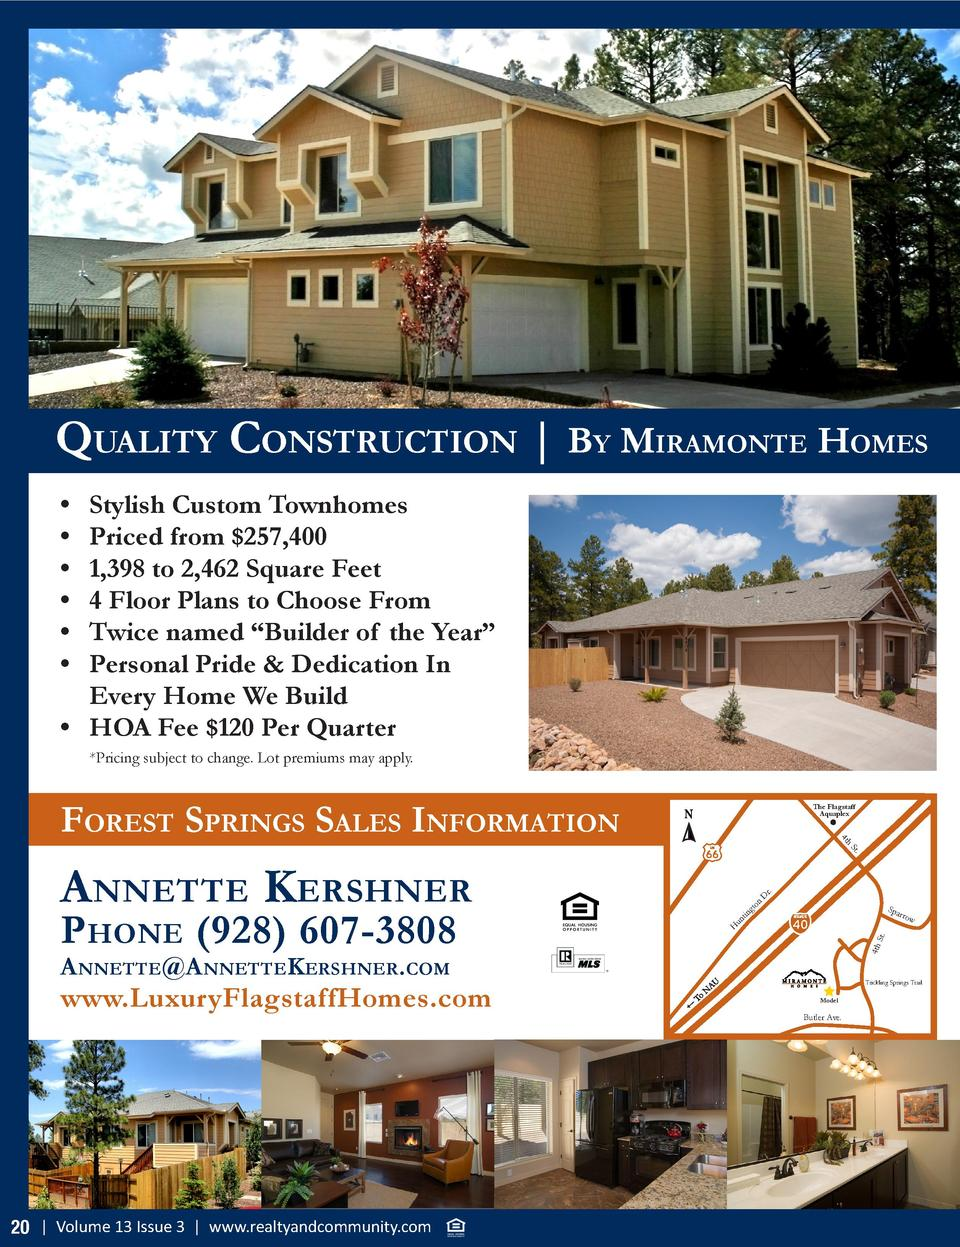 QuAlity construction   By mirAmonte homes                          Stylish Custom Townhomes Priced from  257,400 1,398 to ...